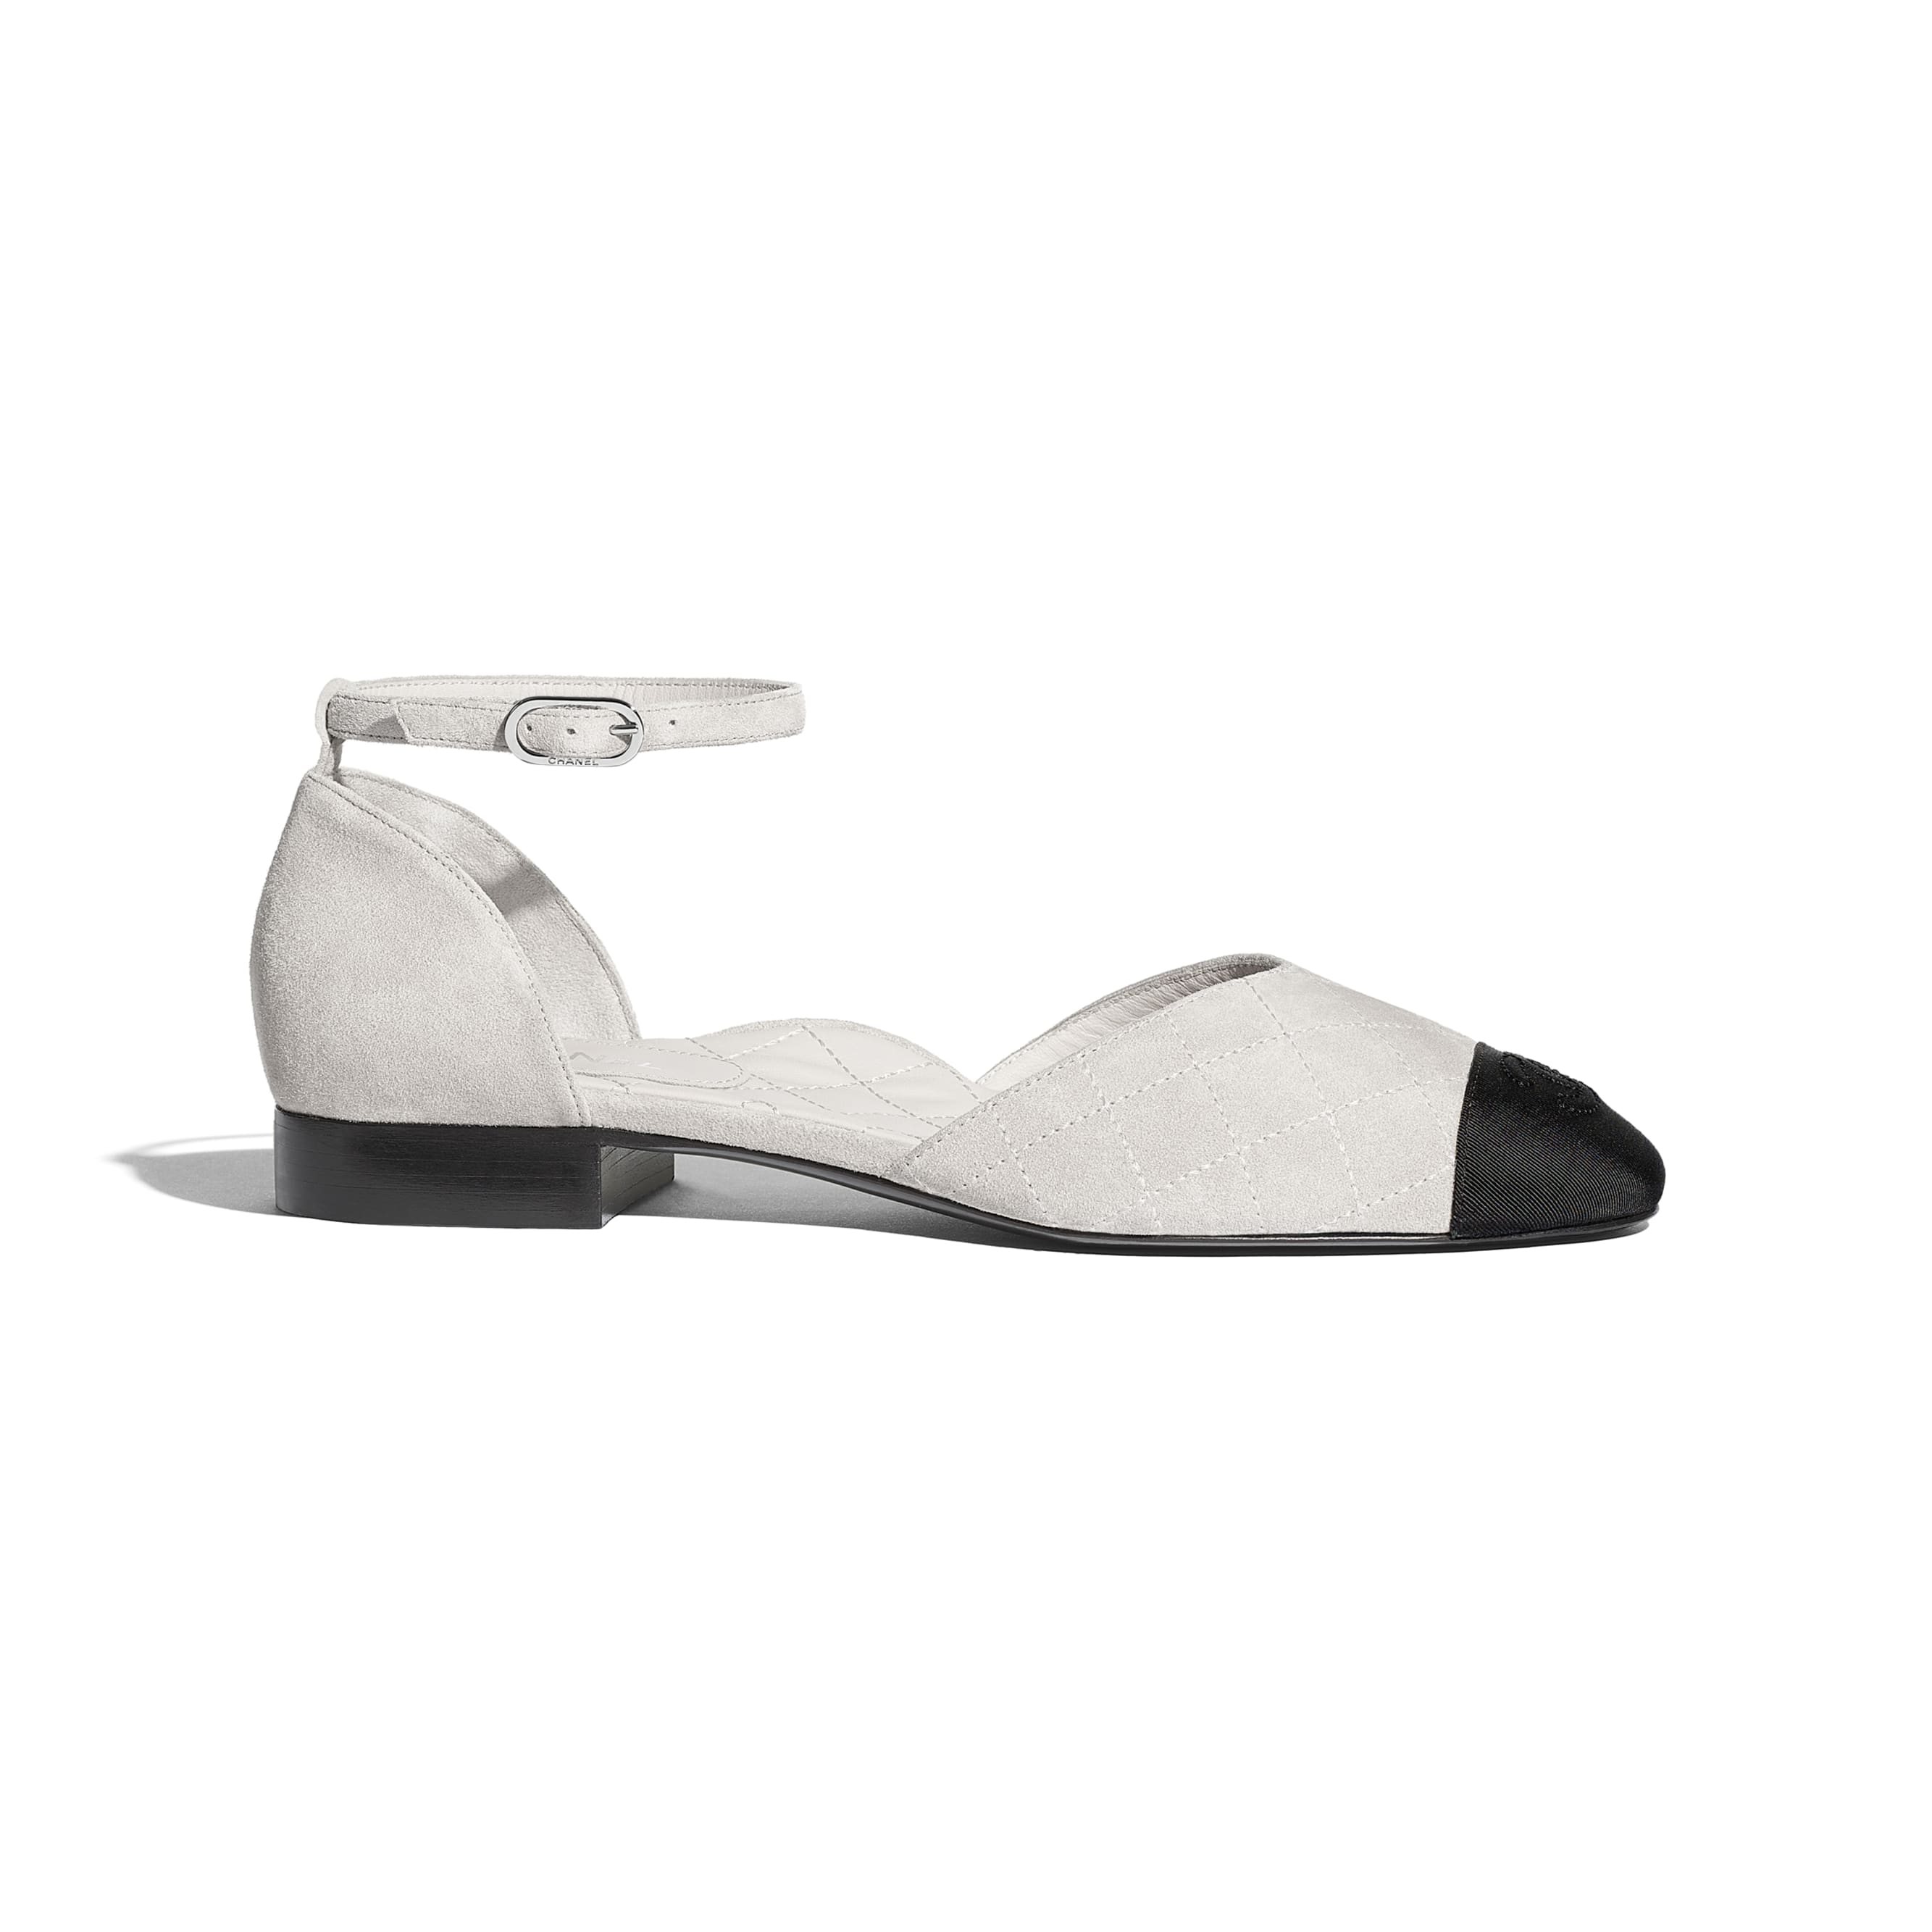 Mary Janes  - Light Grey & Black - Suede Calfskin & Grosgrain - Default view - see standard sized version